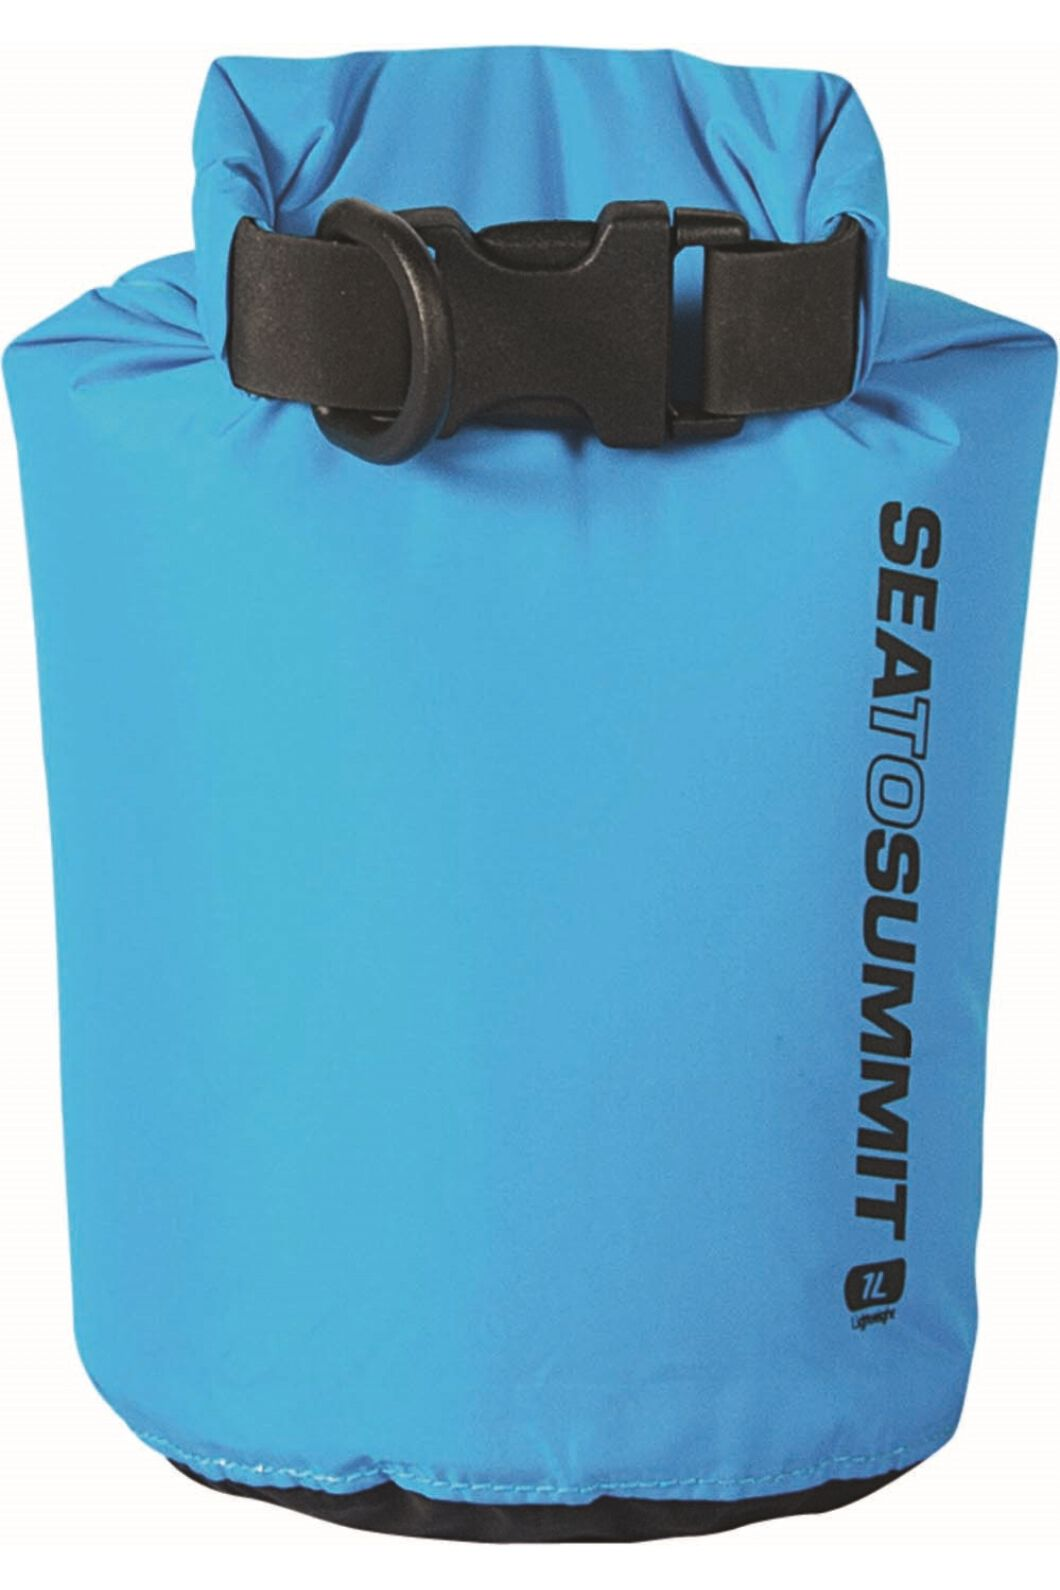 Sea to Summit Lightweight 1L Dry Bag, None, hi-res